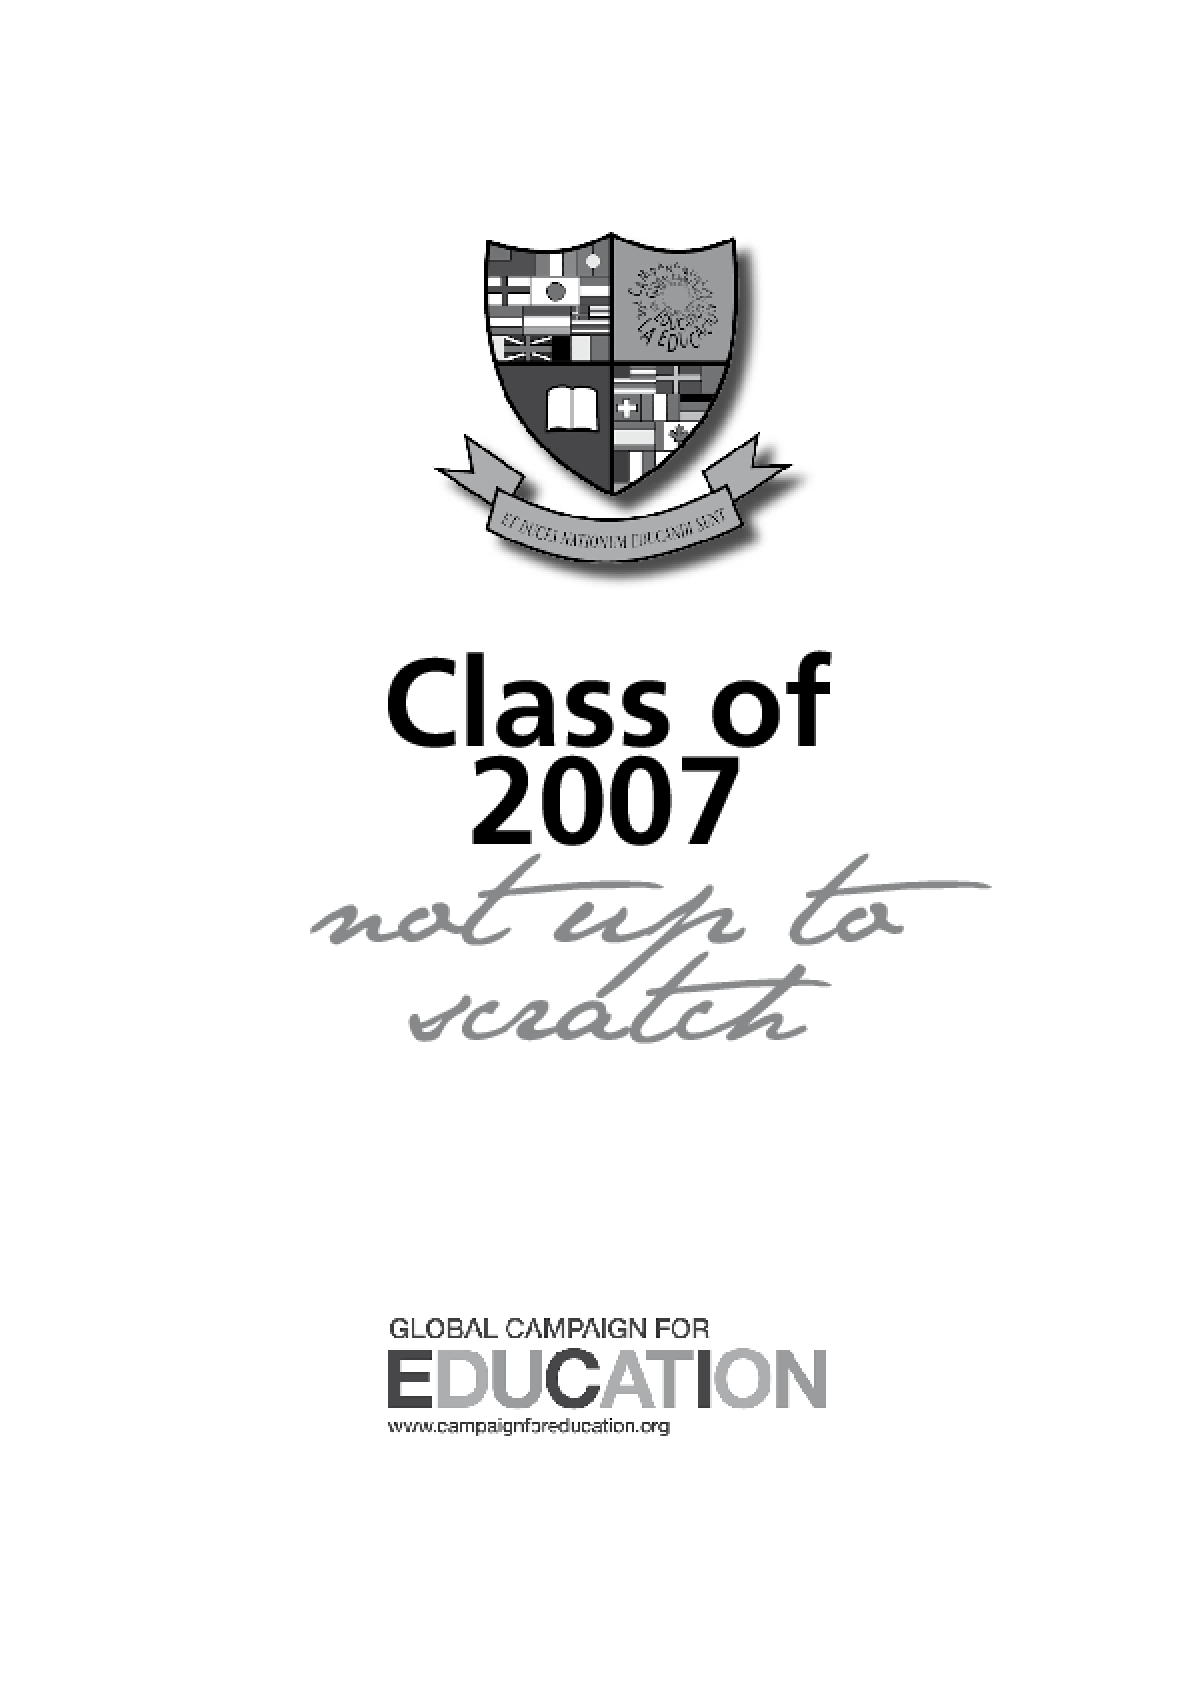 Class of 2007: Not up to scratch